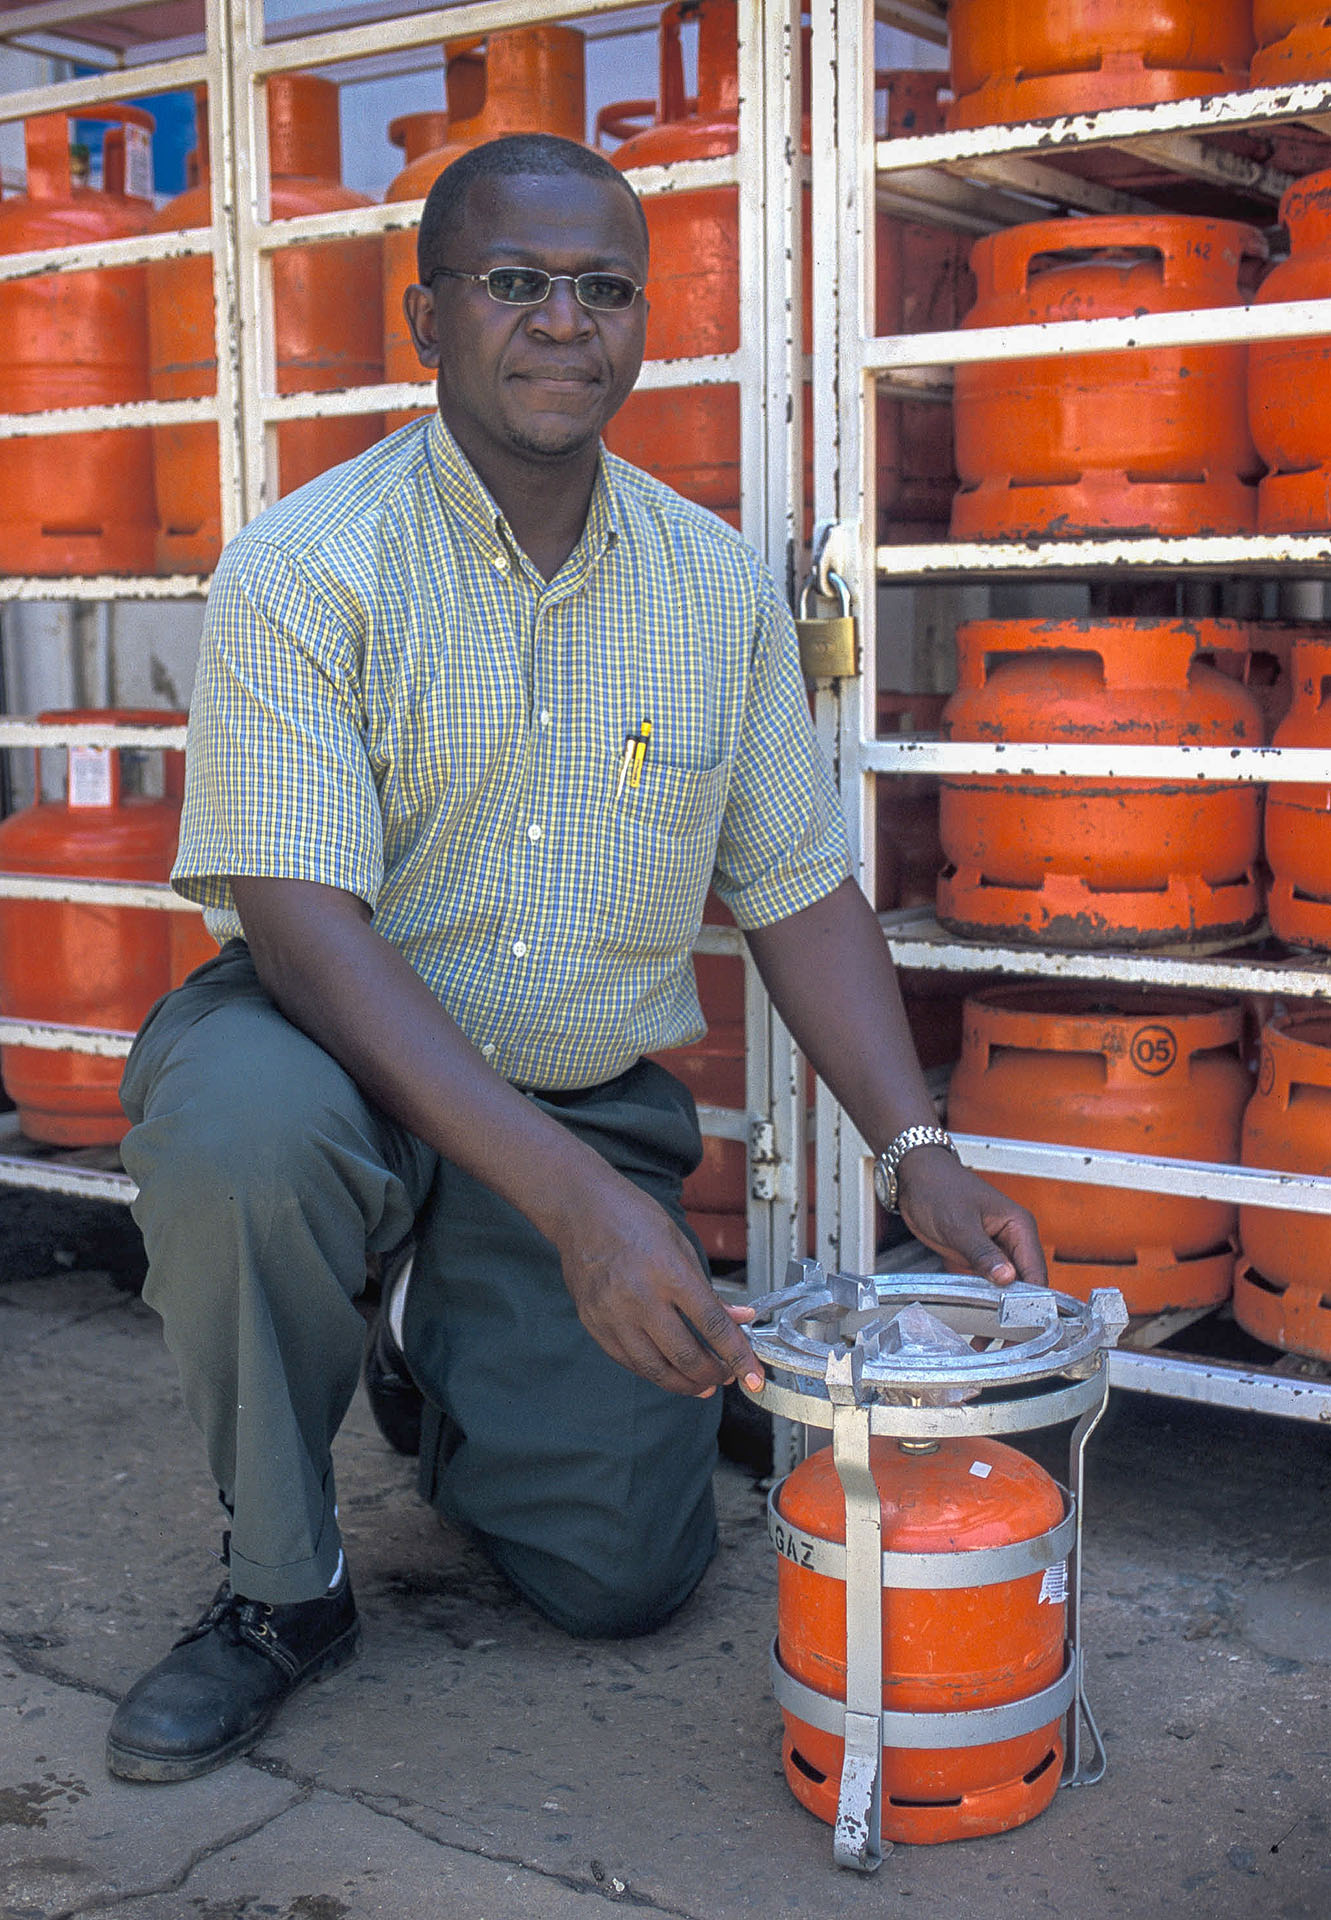 Store of LPG cylinders with 'Meko' type single-burner stoves attached, Kenya